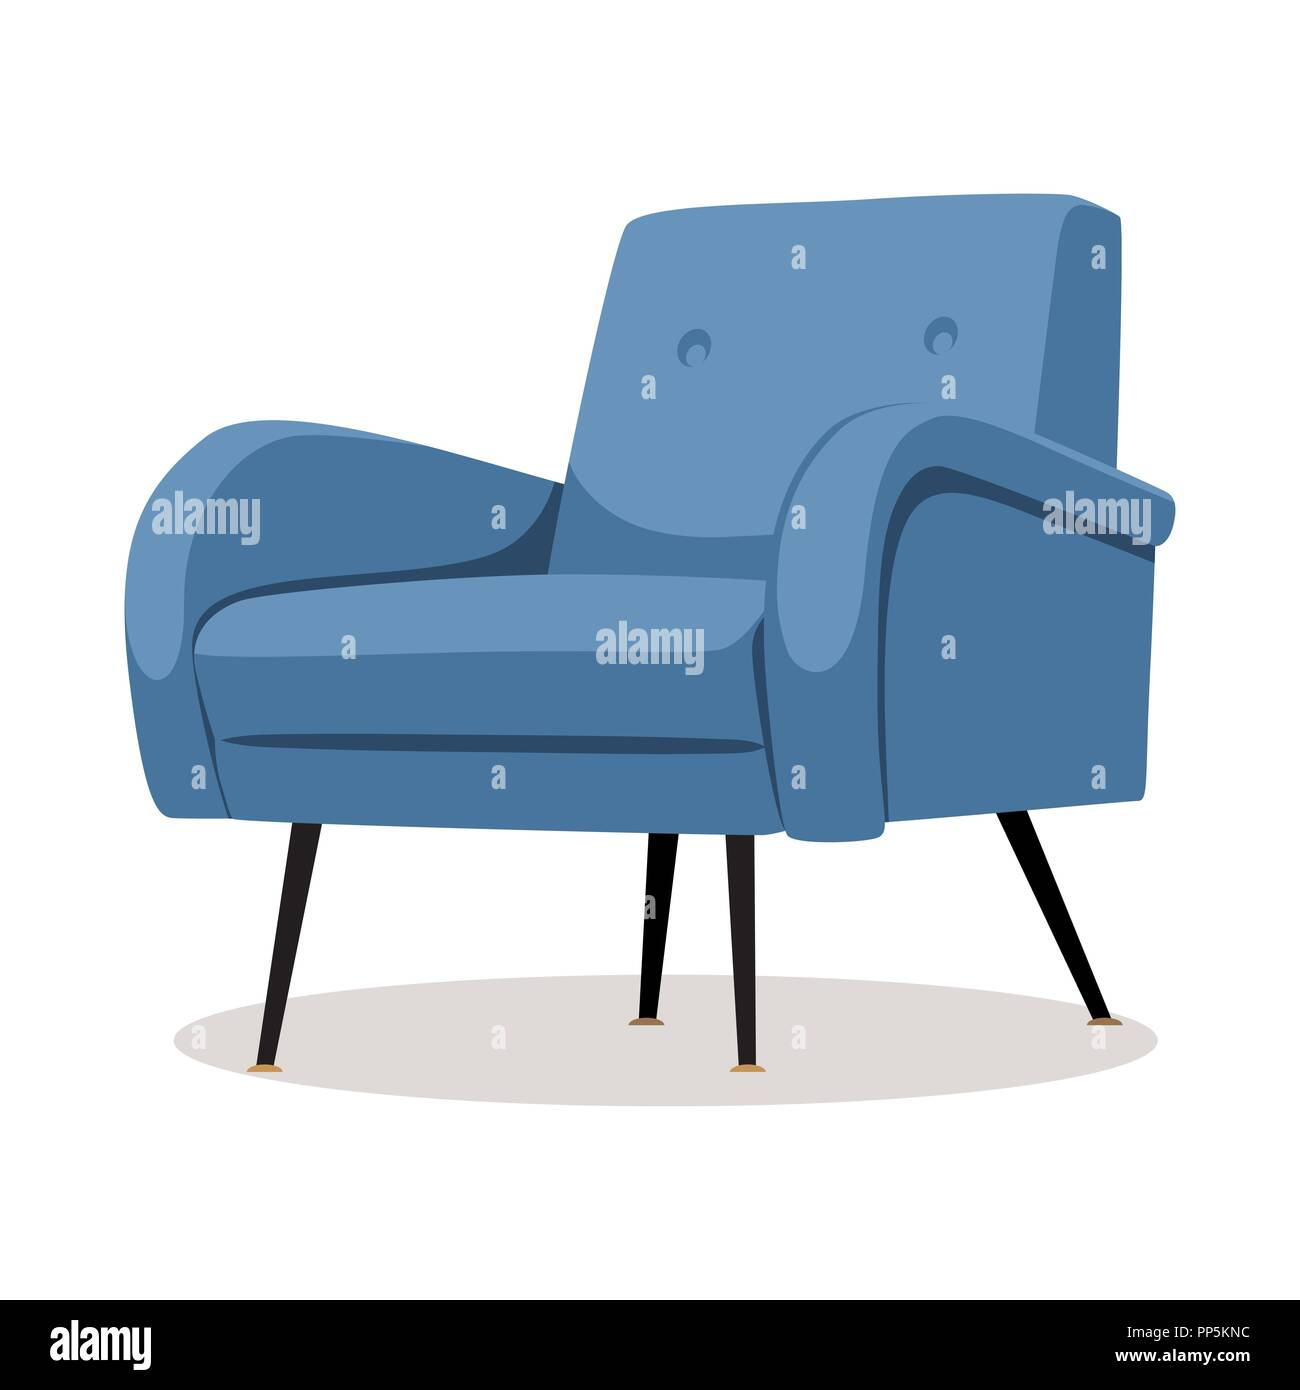 Modern blue soft armchair with upholstery interior design element isolated on white background